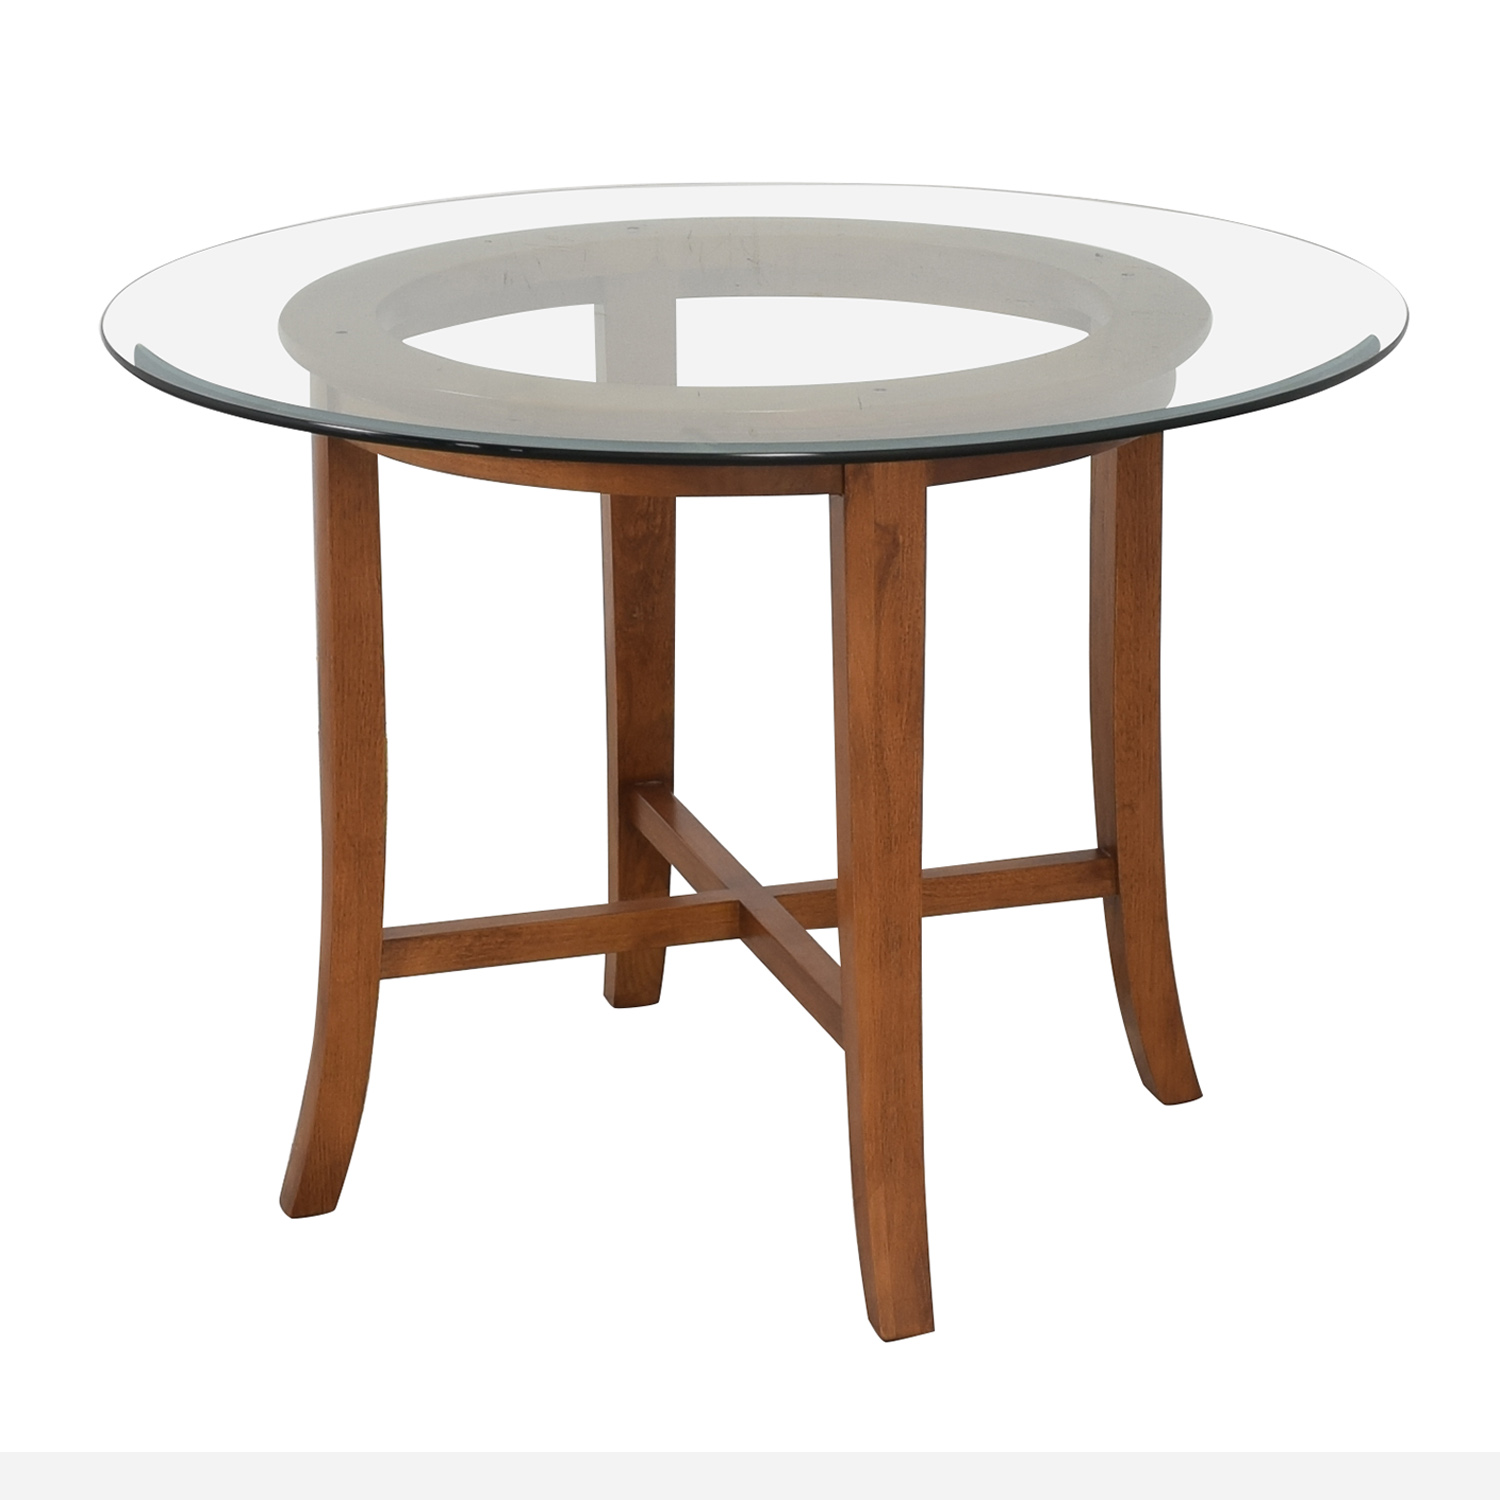 buy Crate & Barrel Halo Round Dining Table Crate & Barrel